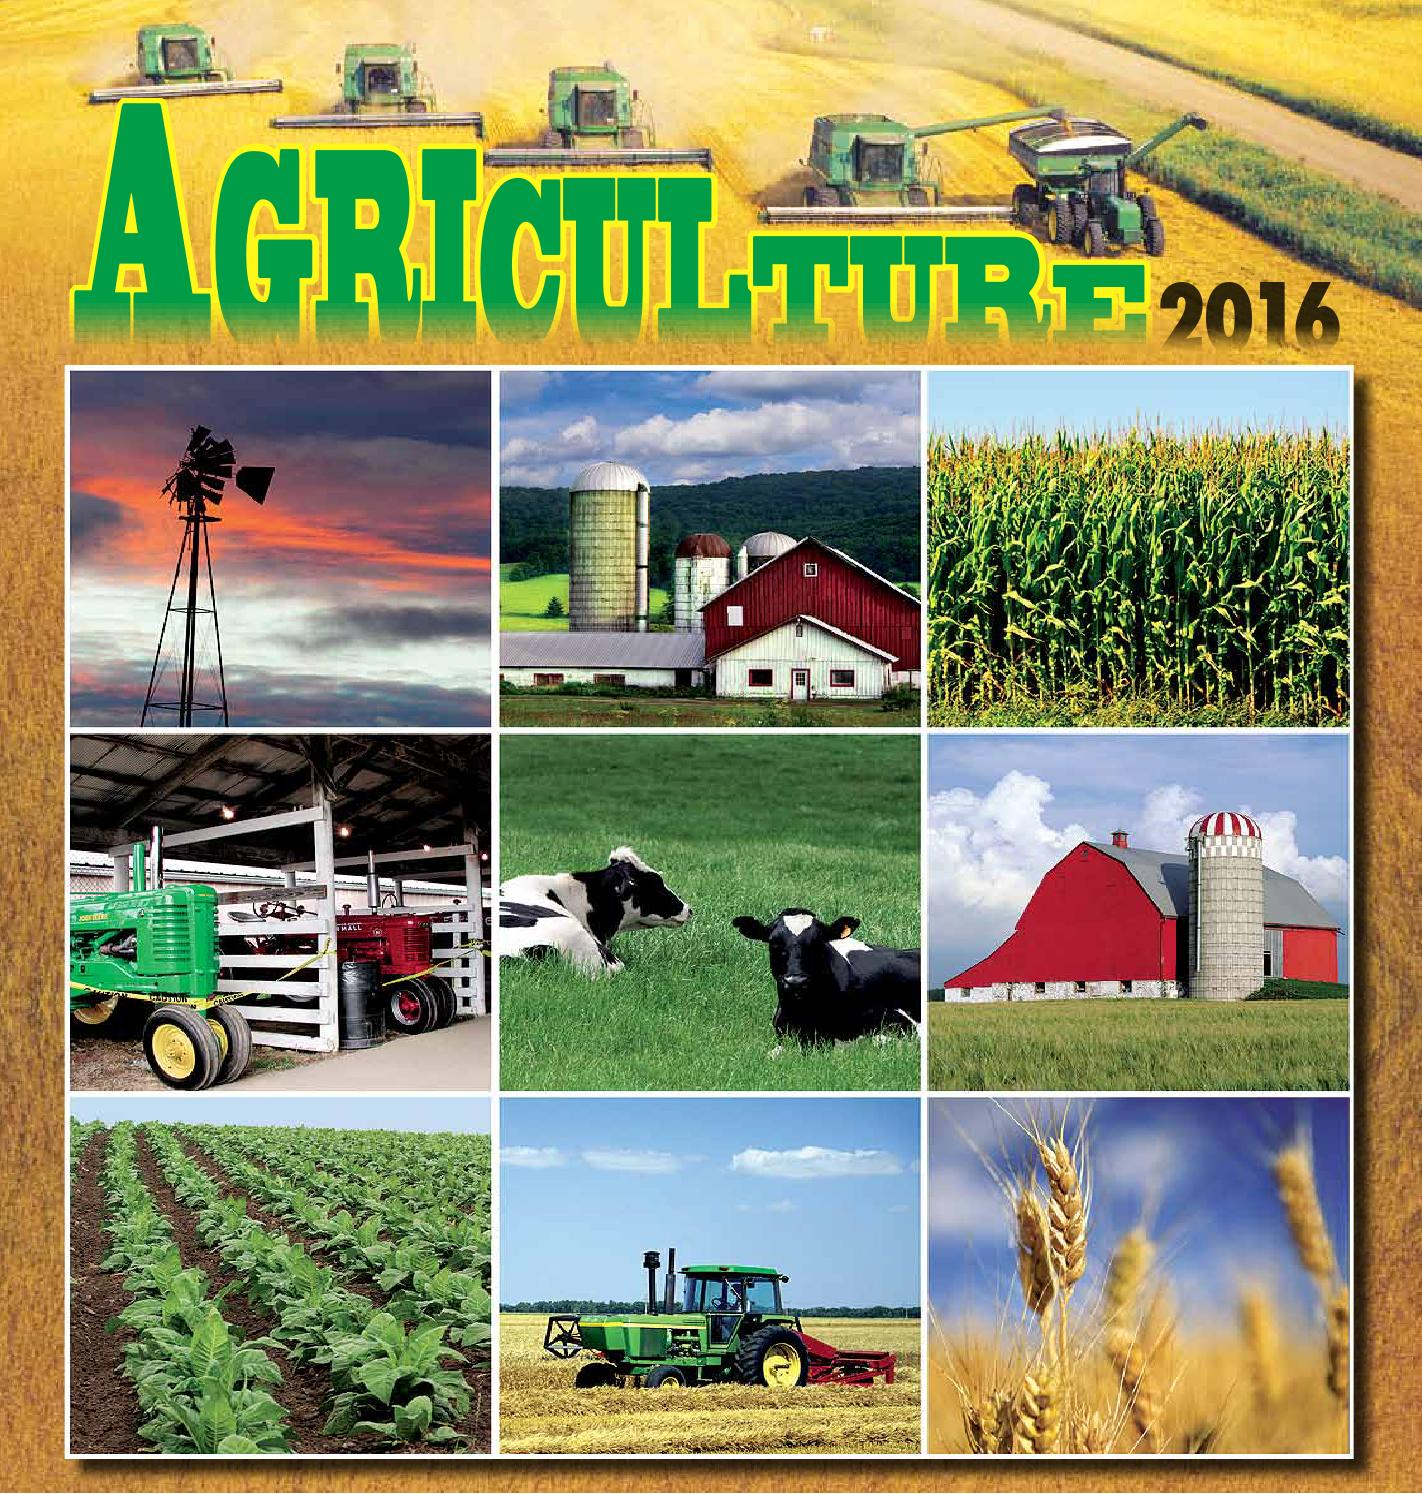 2016 agriculture by messenger inquirer issuu for Soil uk tour 2016